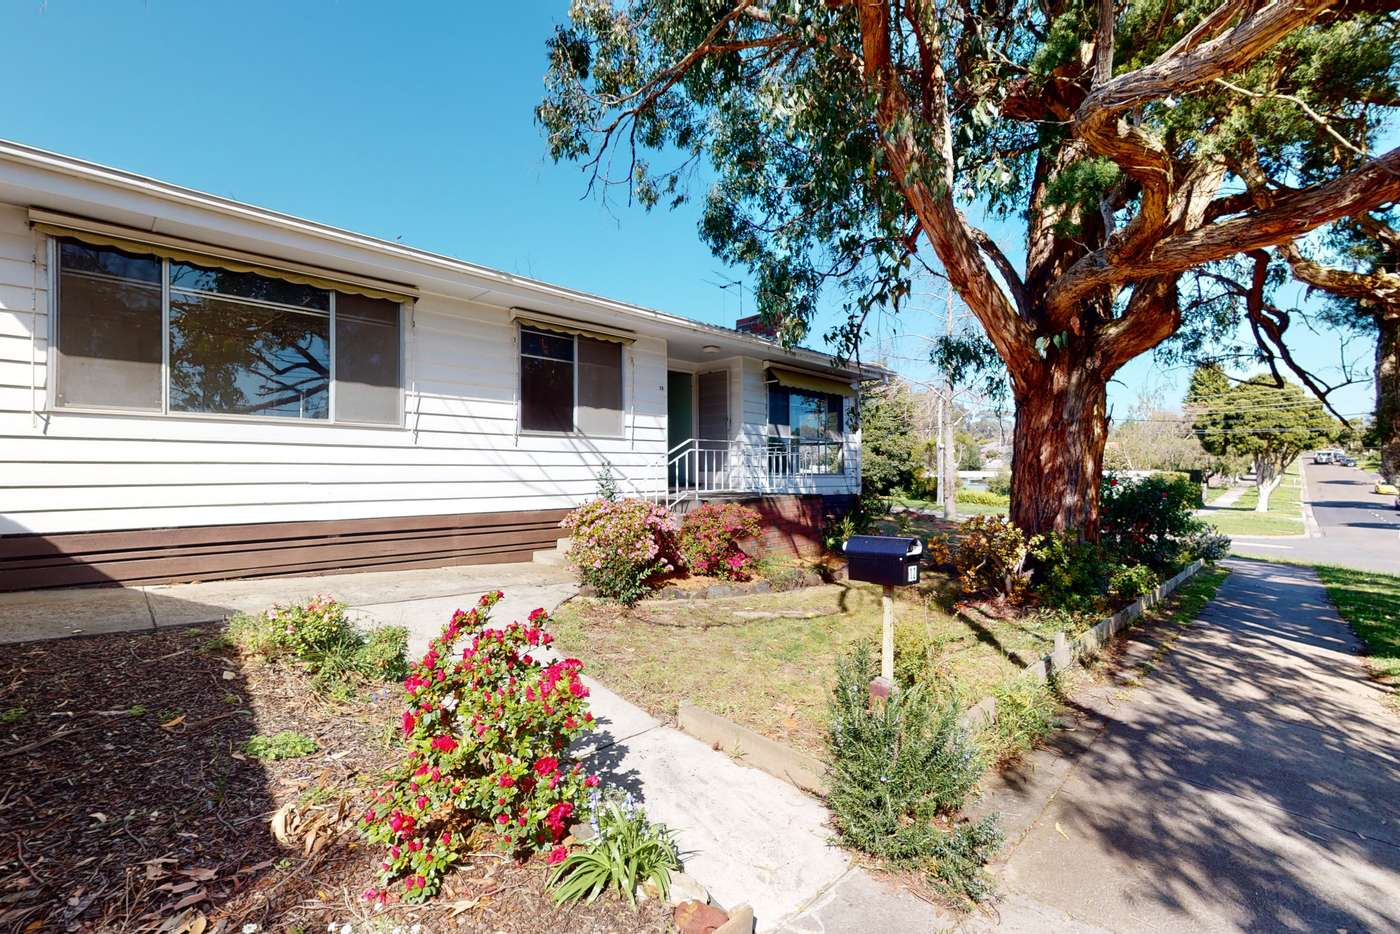 Main view of Homely house listing, 12 Tweed Street, Ringwood East VIC 3135